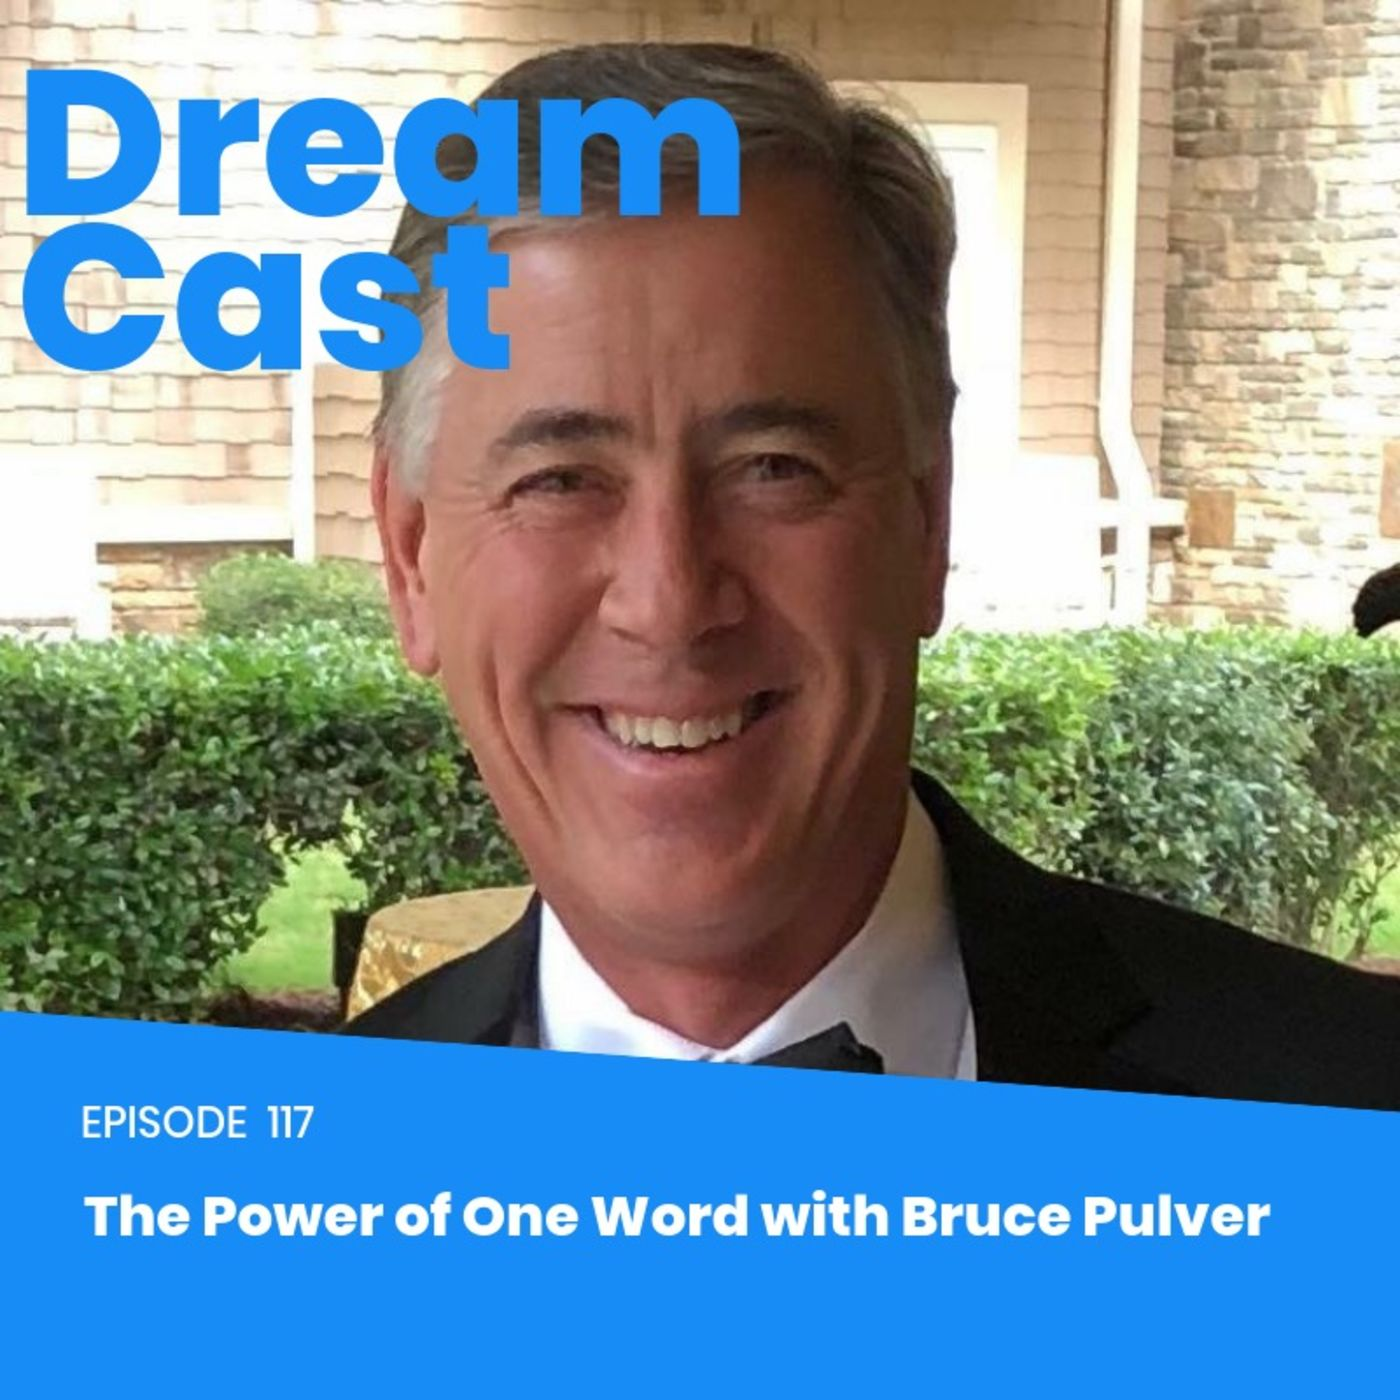 Episode 117 - The Power of One Word with Bruce Pulver